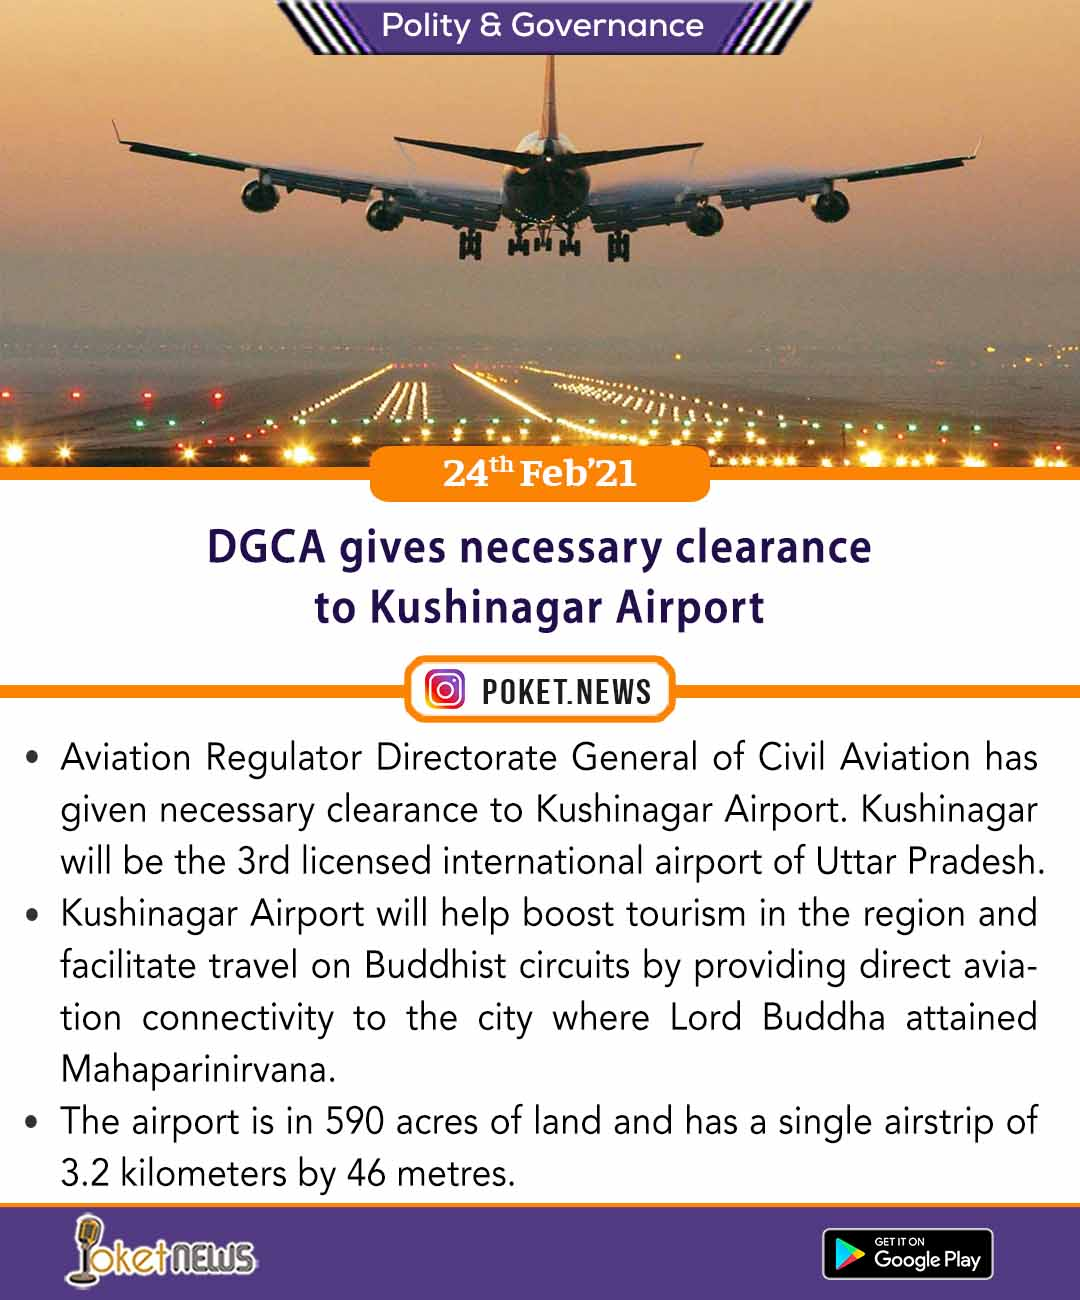 DGCA gives necessary clearance to Kushinagar Airport